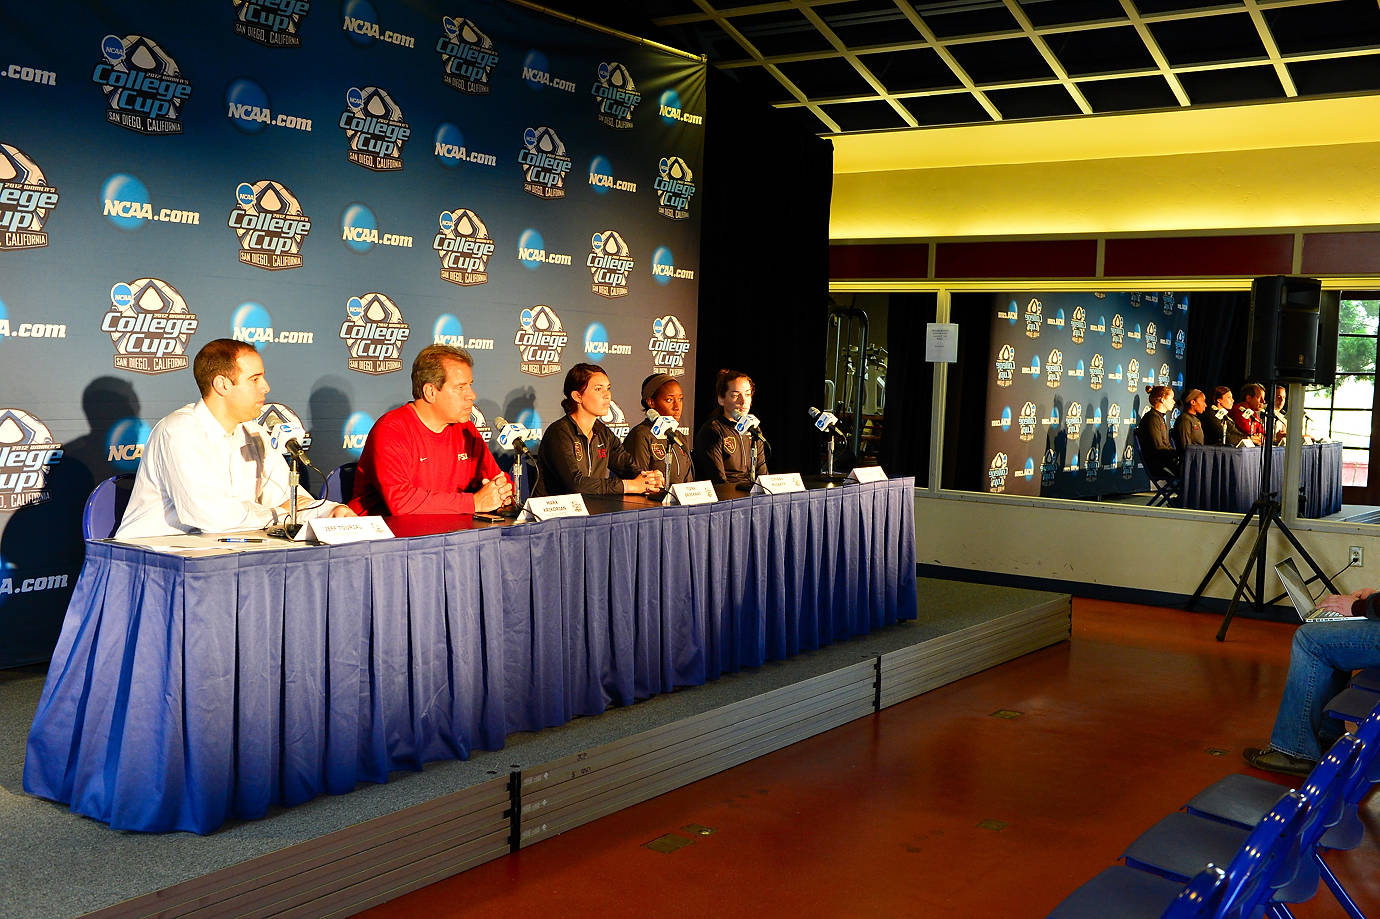 Head coach Mark Krikorian, Tiana Brockway, Tiffany McCarty and Kelsey Wys address the media at the 2012 College Cup.